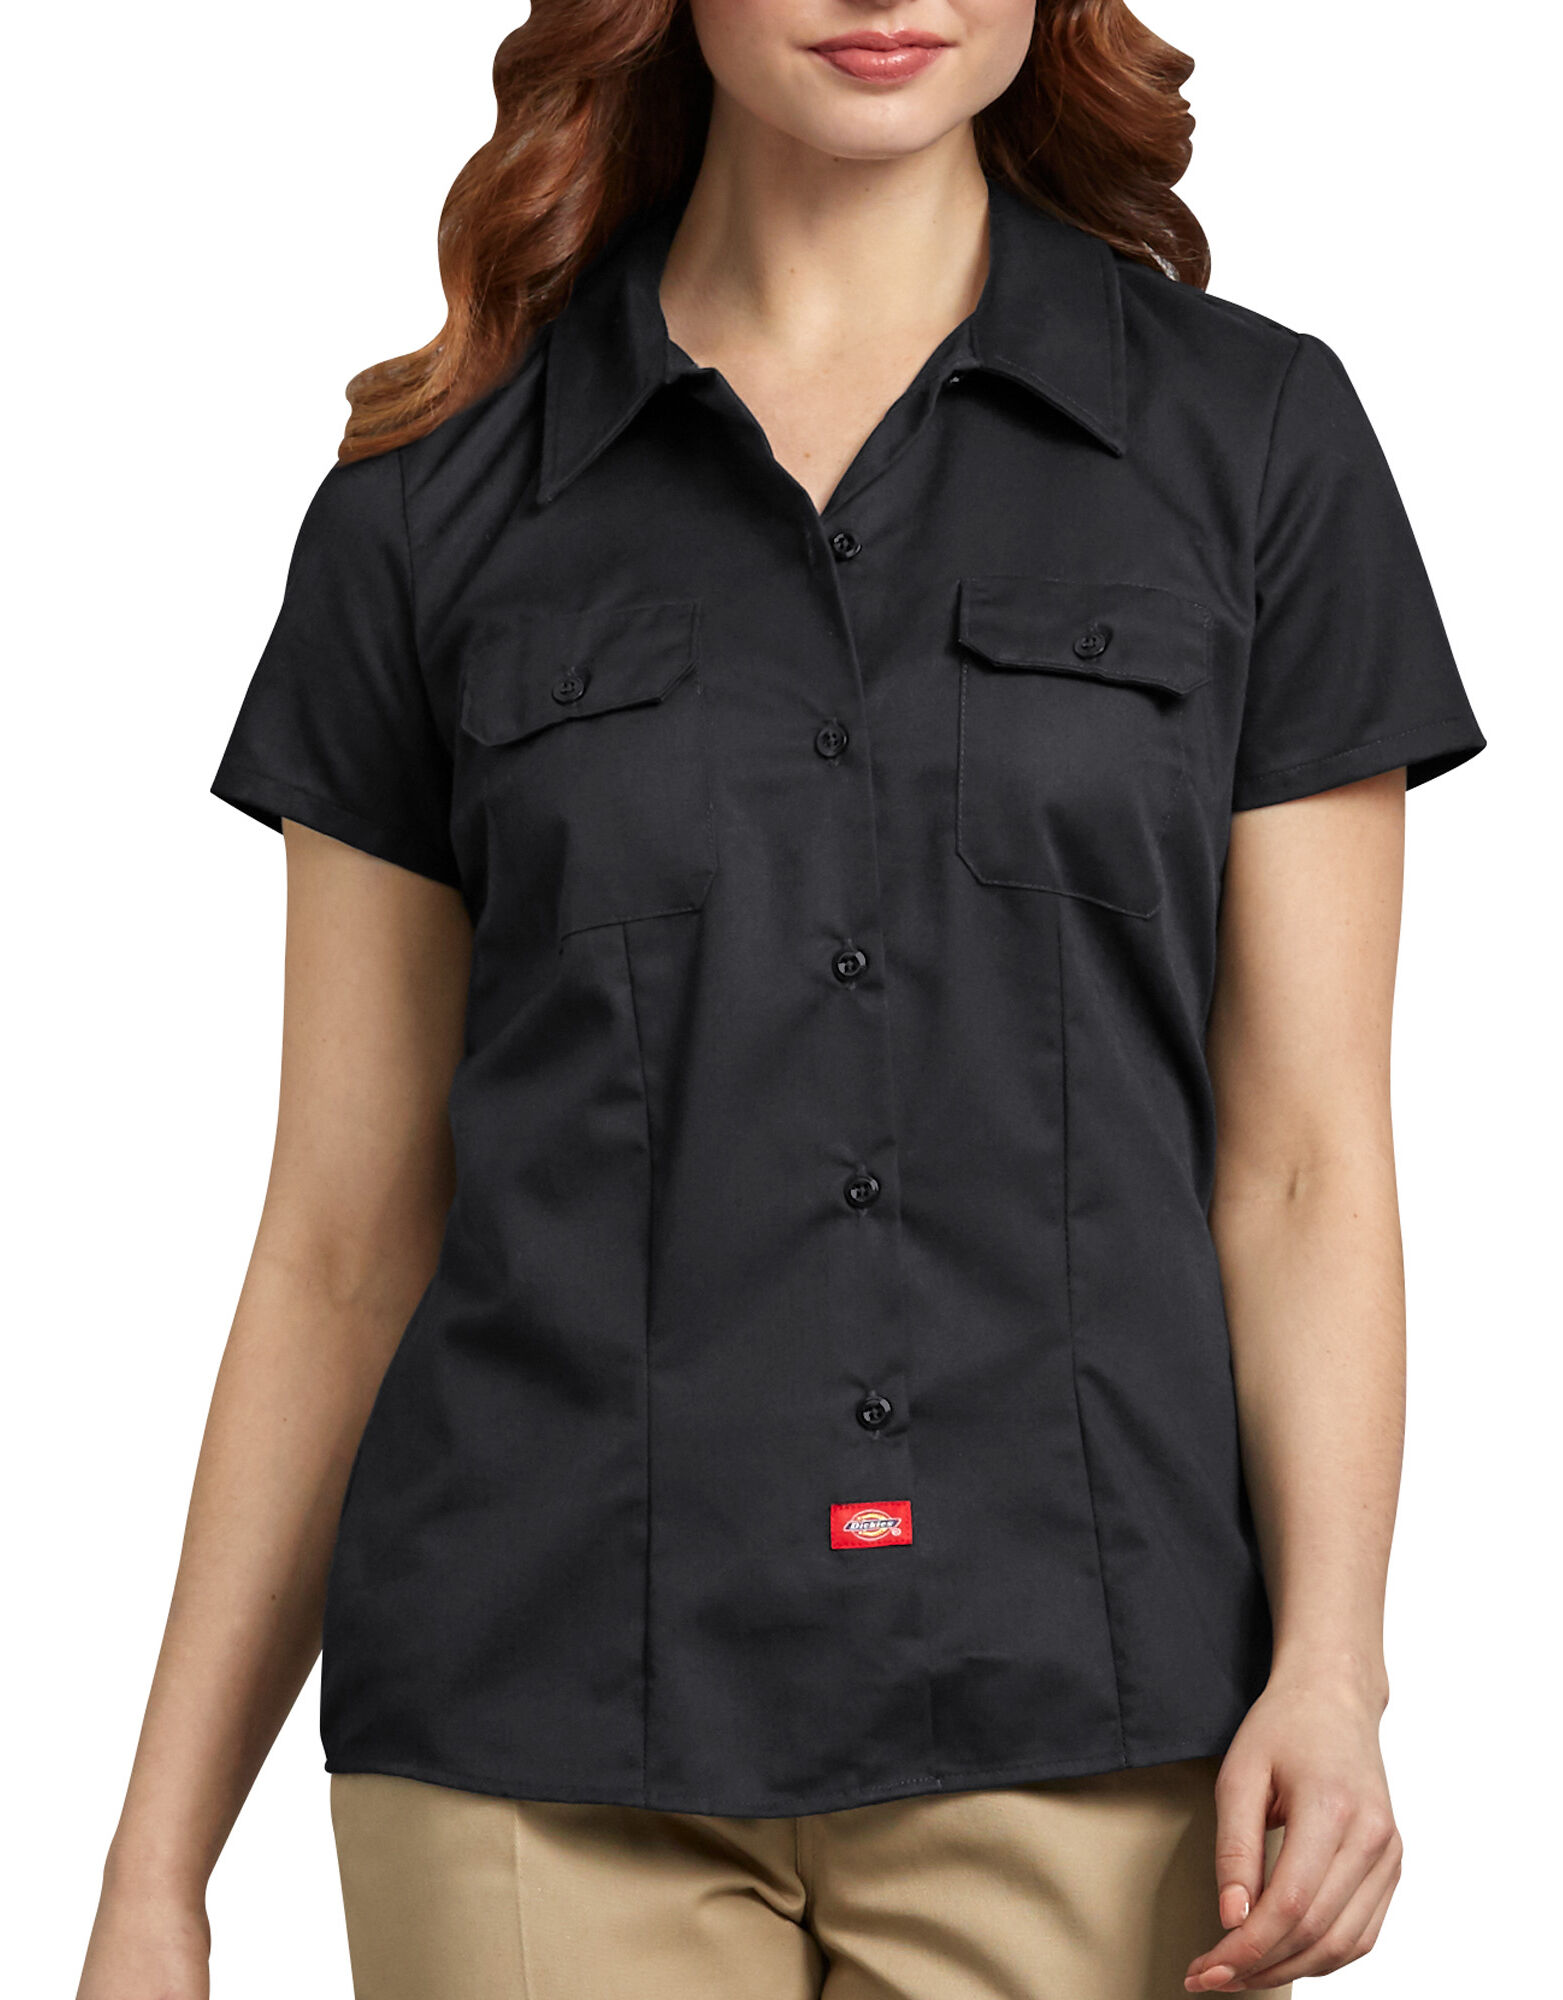 Barnett Harley-Davidson Clothing and Apparel - Barnett Womens Short Sleeve Shirts Due to the extreme popularity of our Christmas in July Sale, our warehouse is running a little behind schedule.